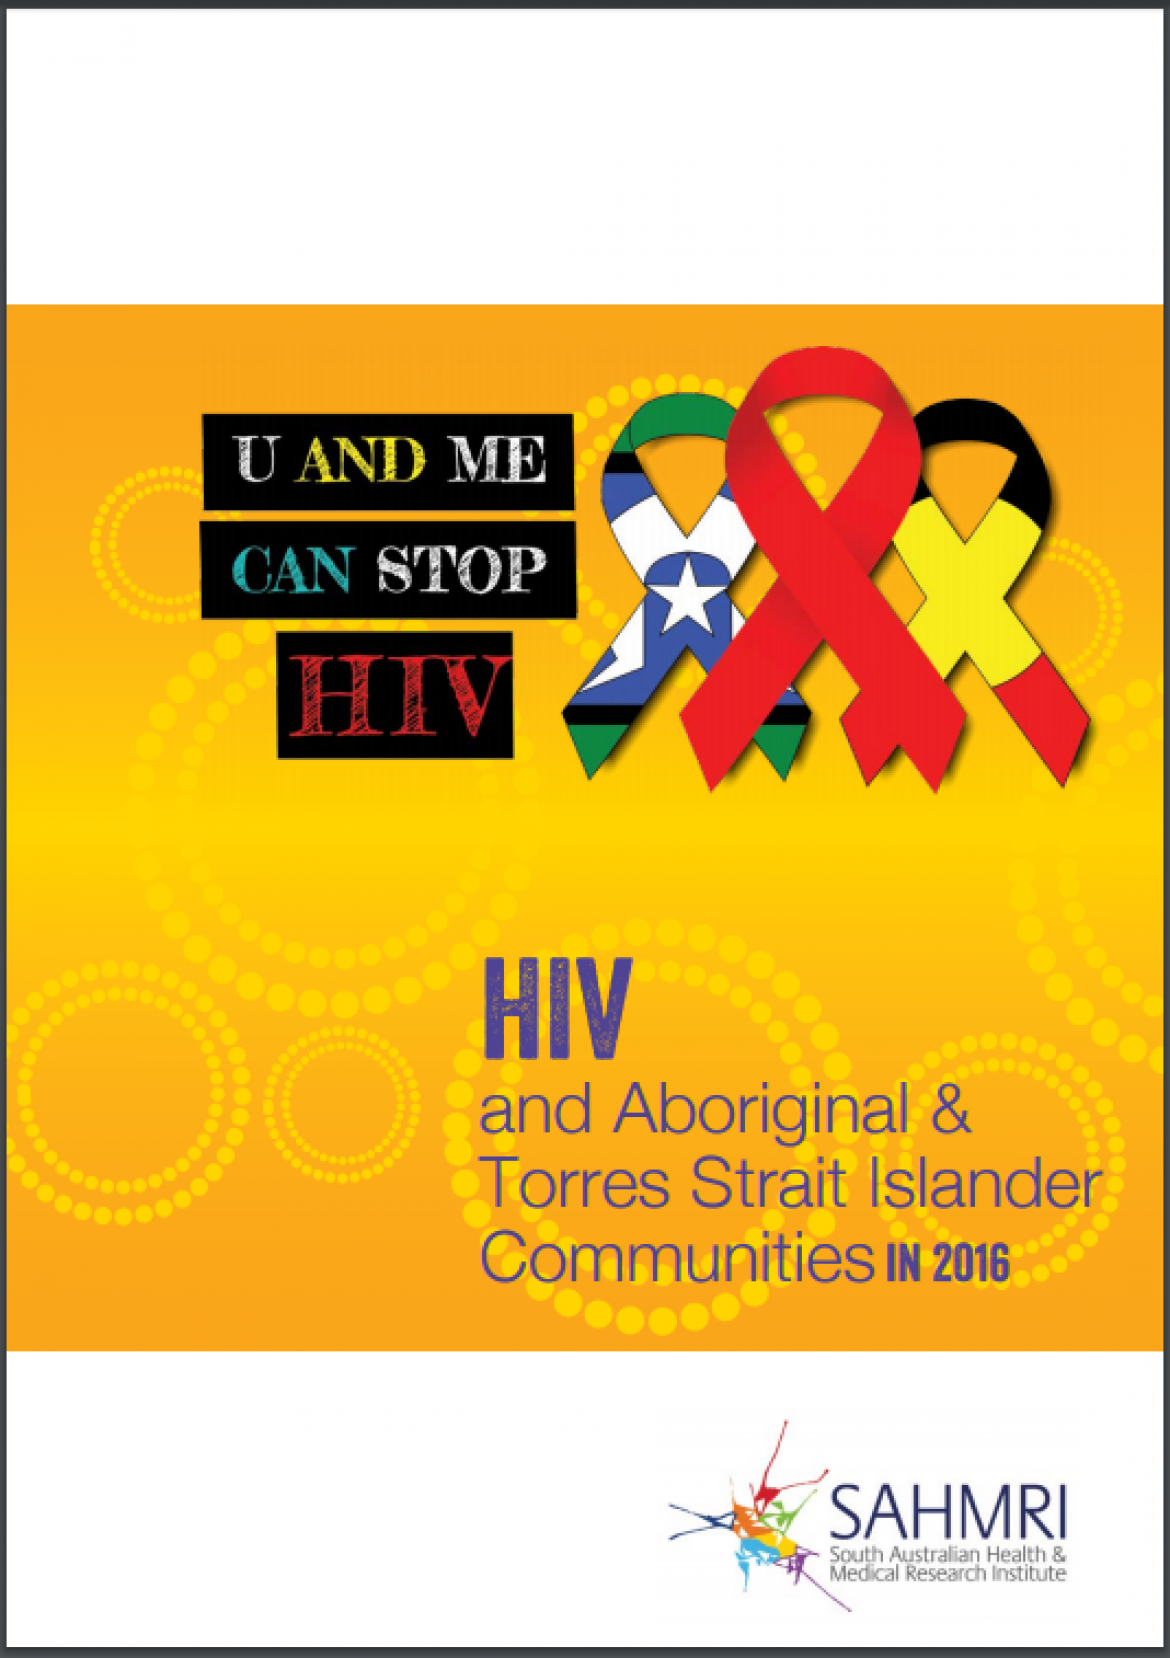 New resource available – HIV and Aboriginal and Torres Strait Islander Communities in 2016